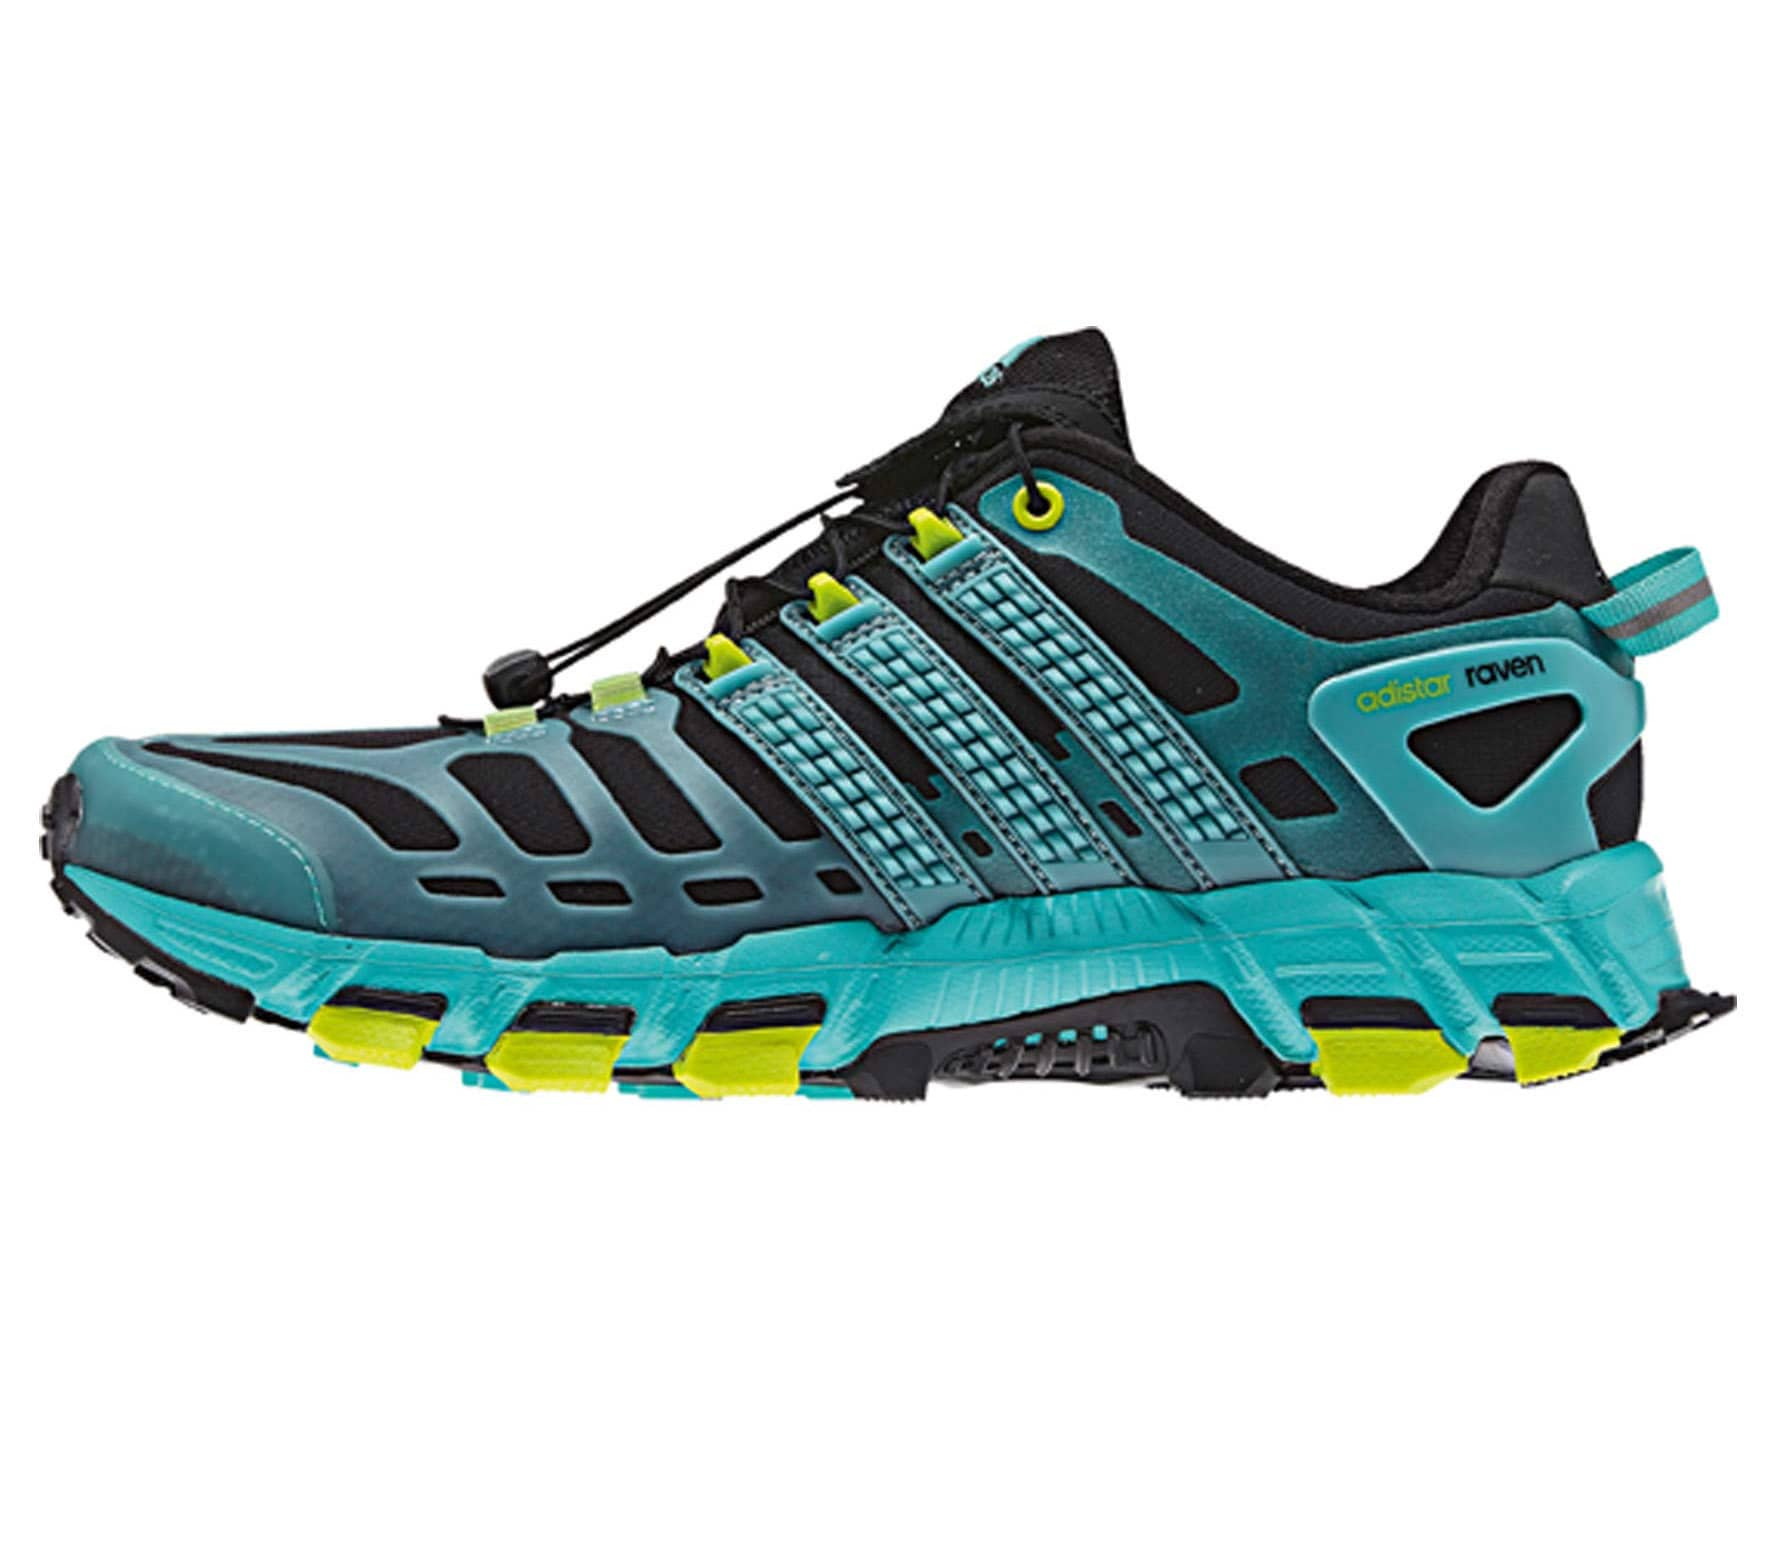 buy online 06e1b eab70 Adidas - Adistar Raven 3 Mujer Zapatos para correr (negromint)